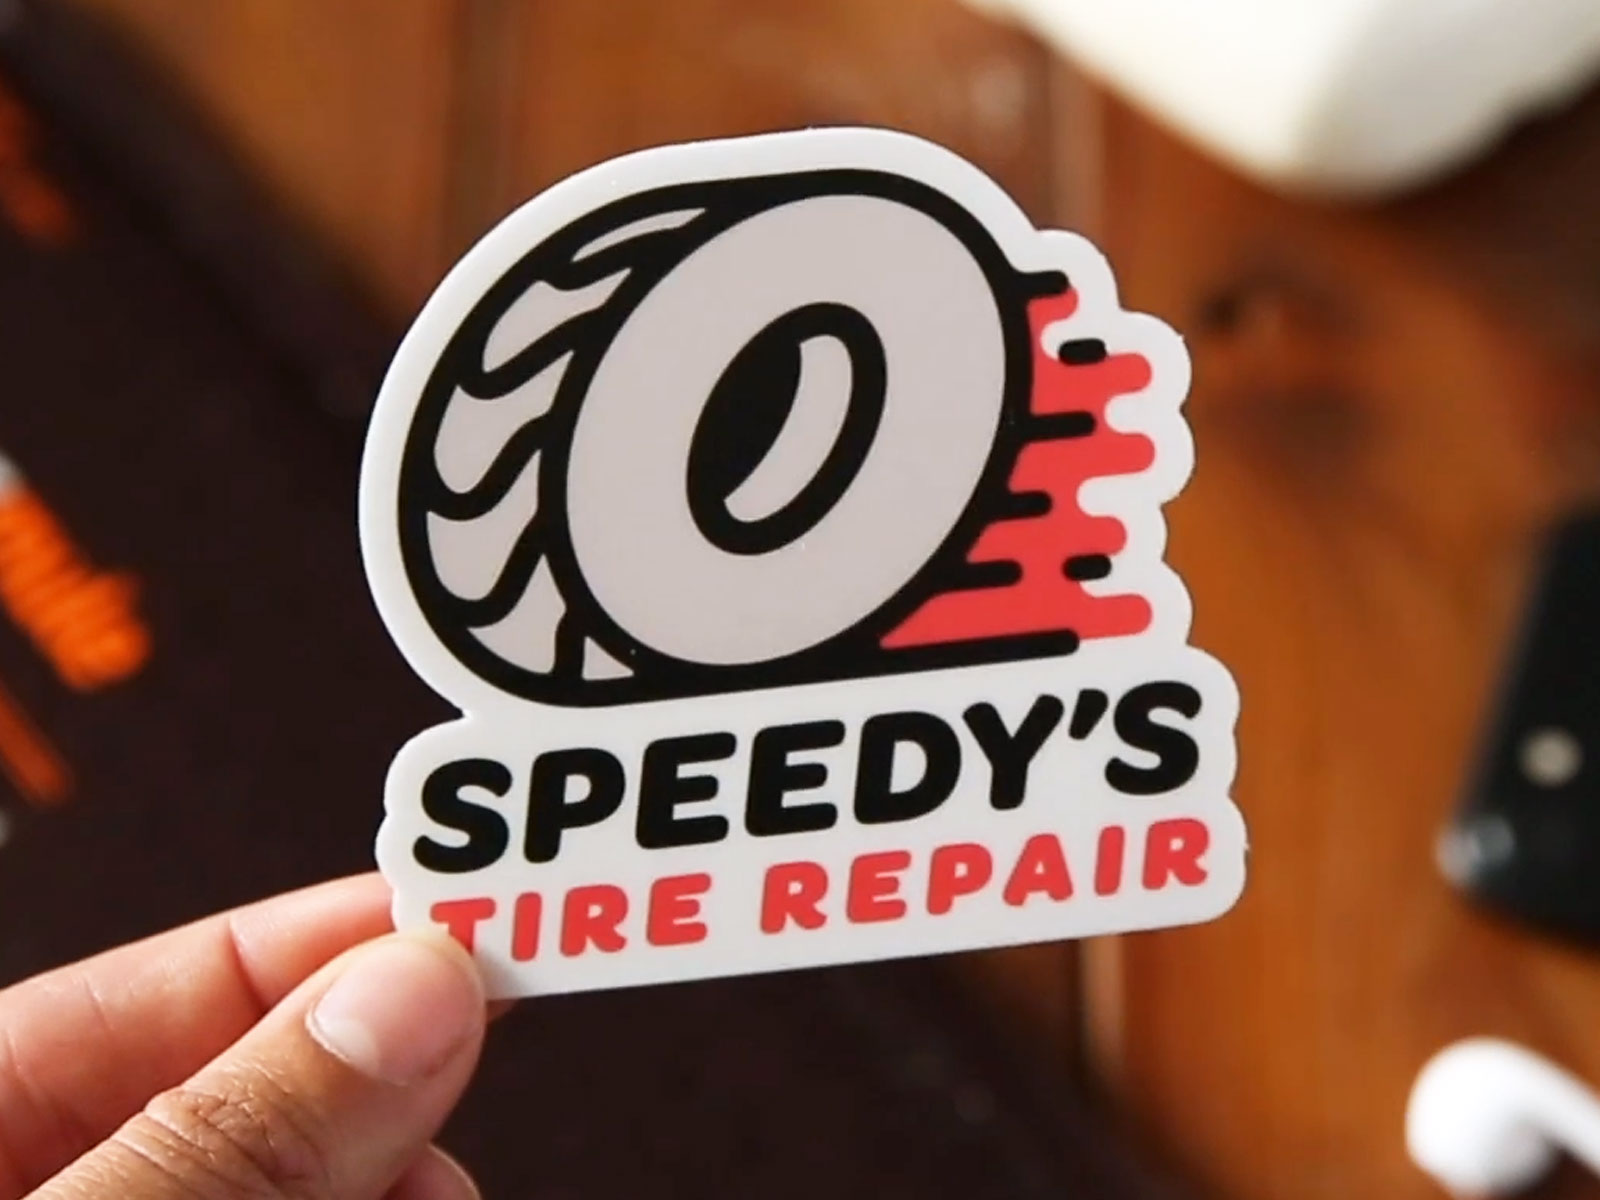 I never thought I'd have to so much fun designed a tire repair service. Go Speedy's!